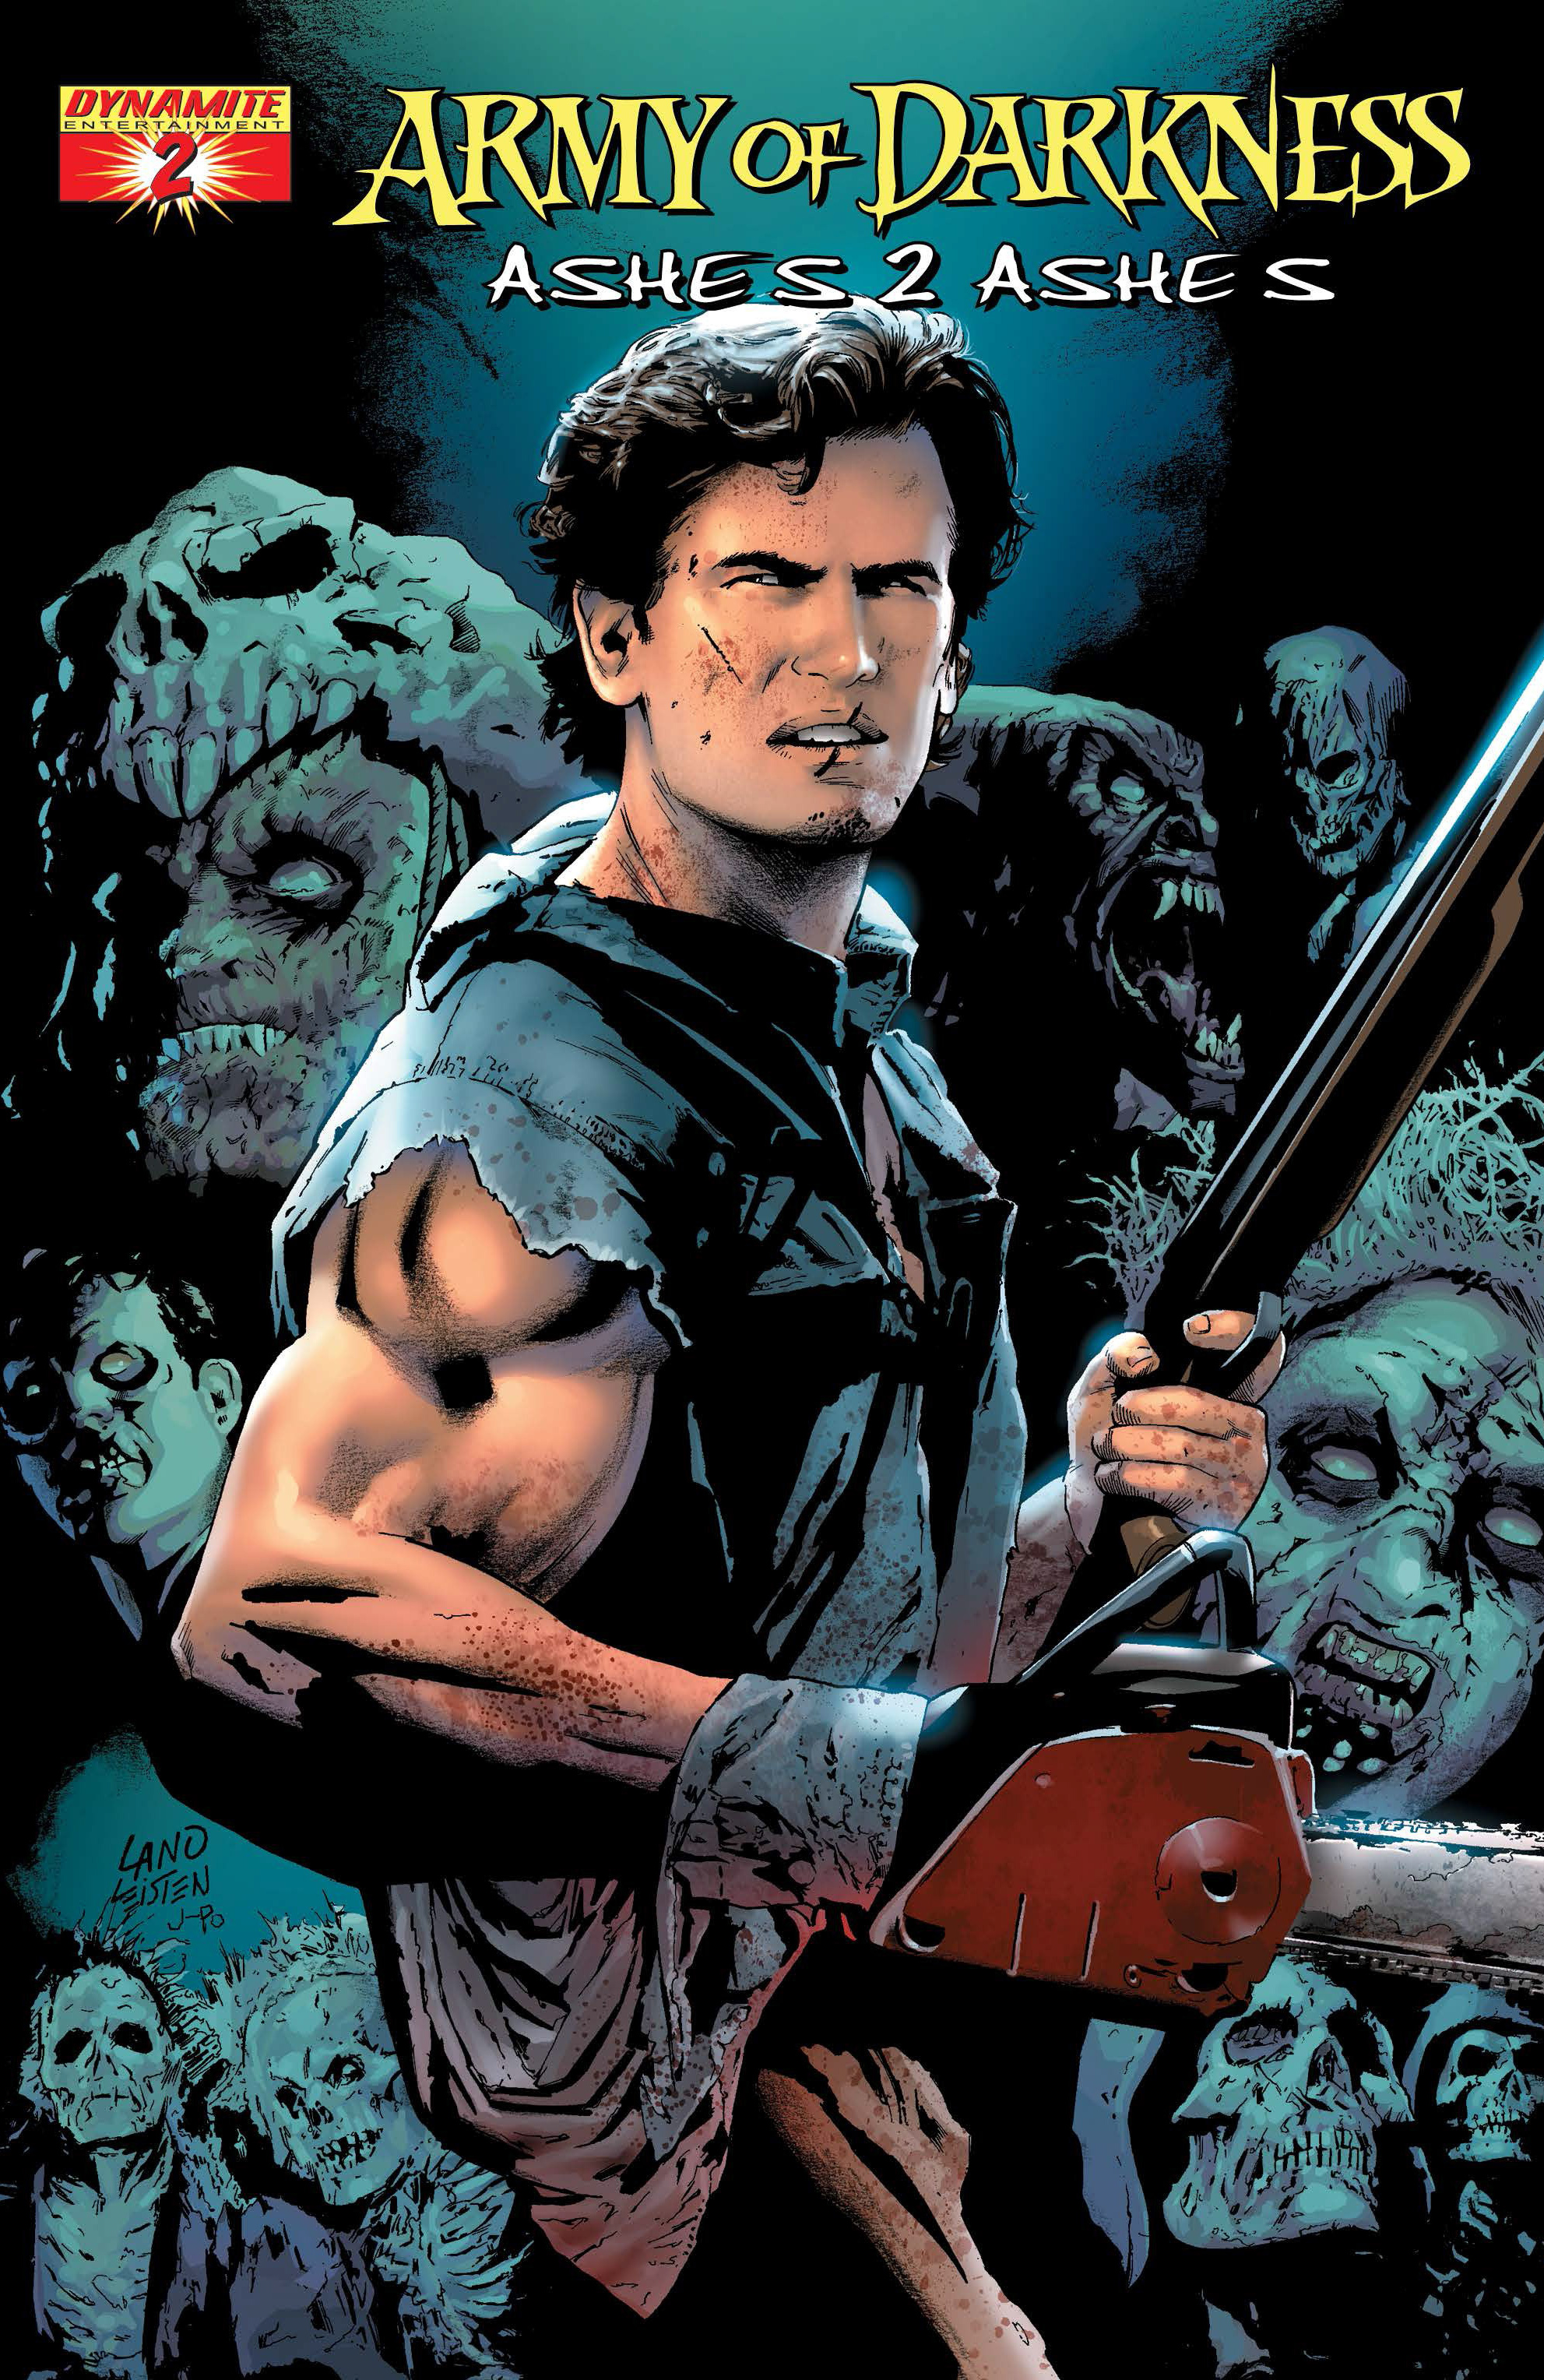 Read online Army of Darkness: Ashes 2 Ashes comic -  Issue #2 - 3